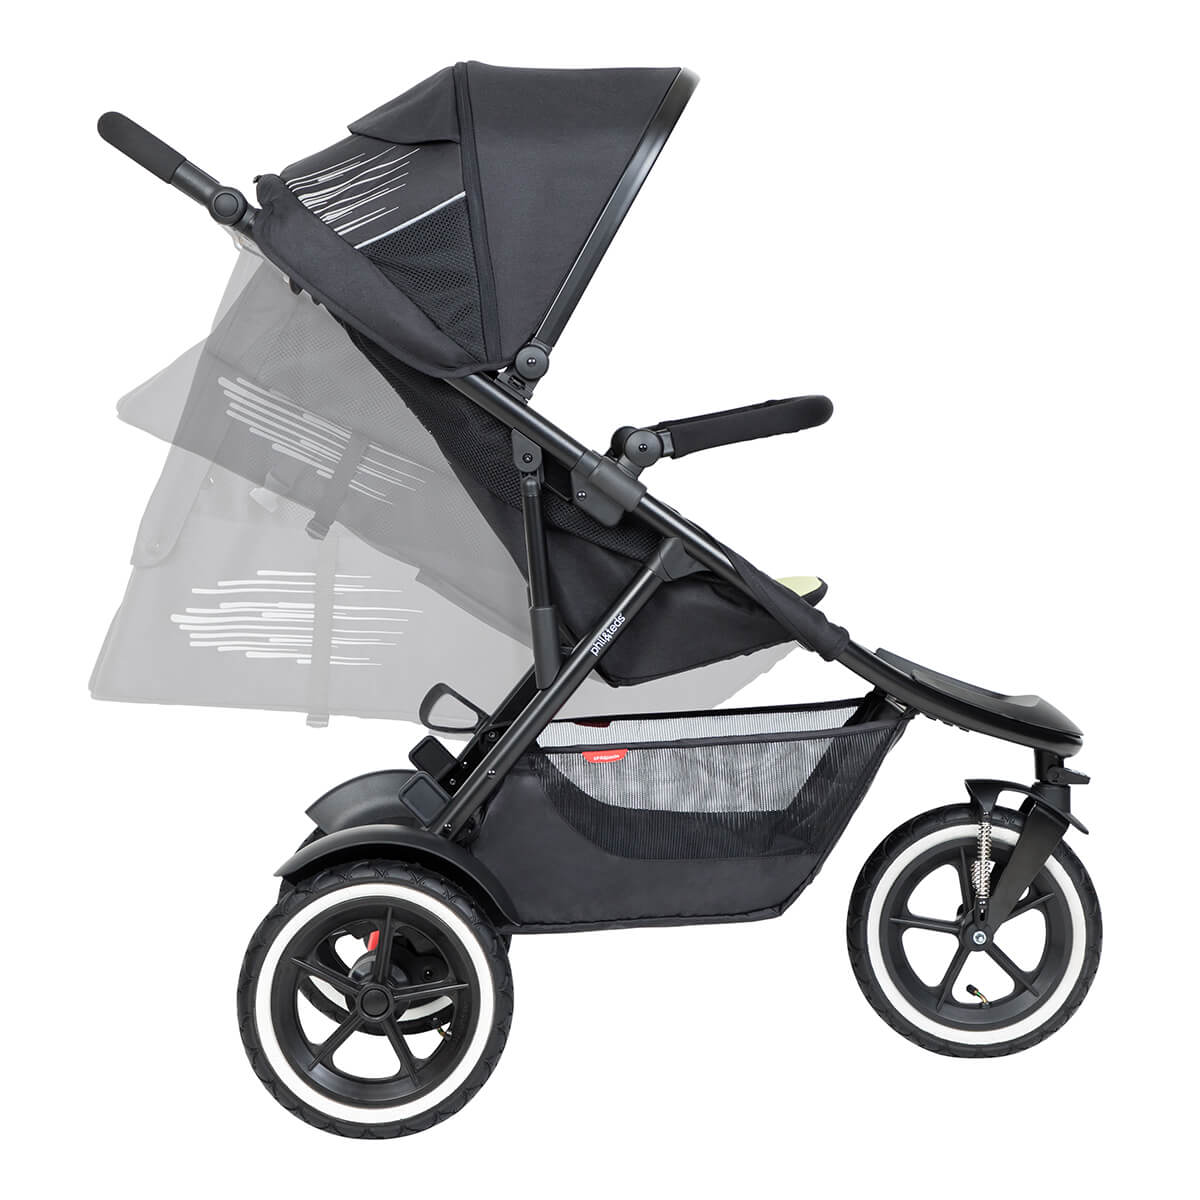 https://cdn.accentuate.io/4509867278433/19793939267754/philteds-sport-buggy-can-recline-in-multiple-angles-including-full-recline-for-newborn-baby-v1626485275925.jpg?1200x1200